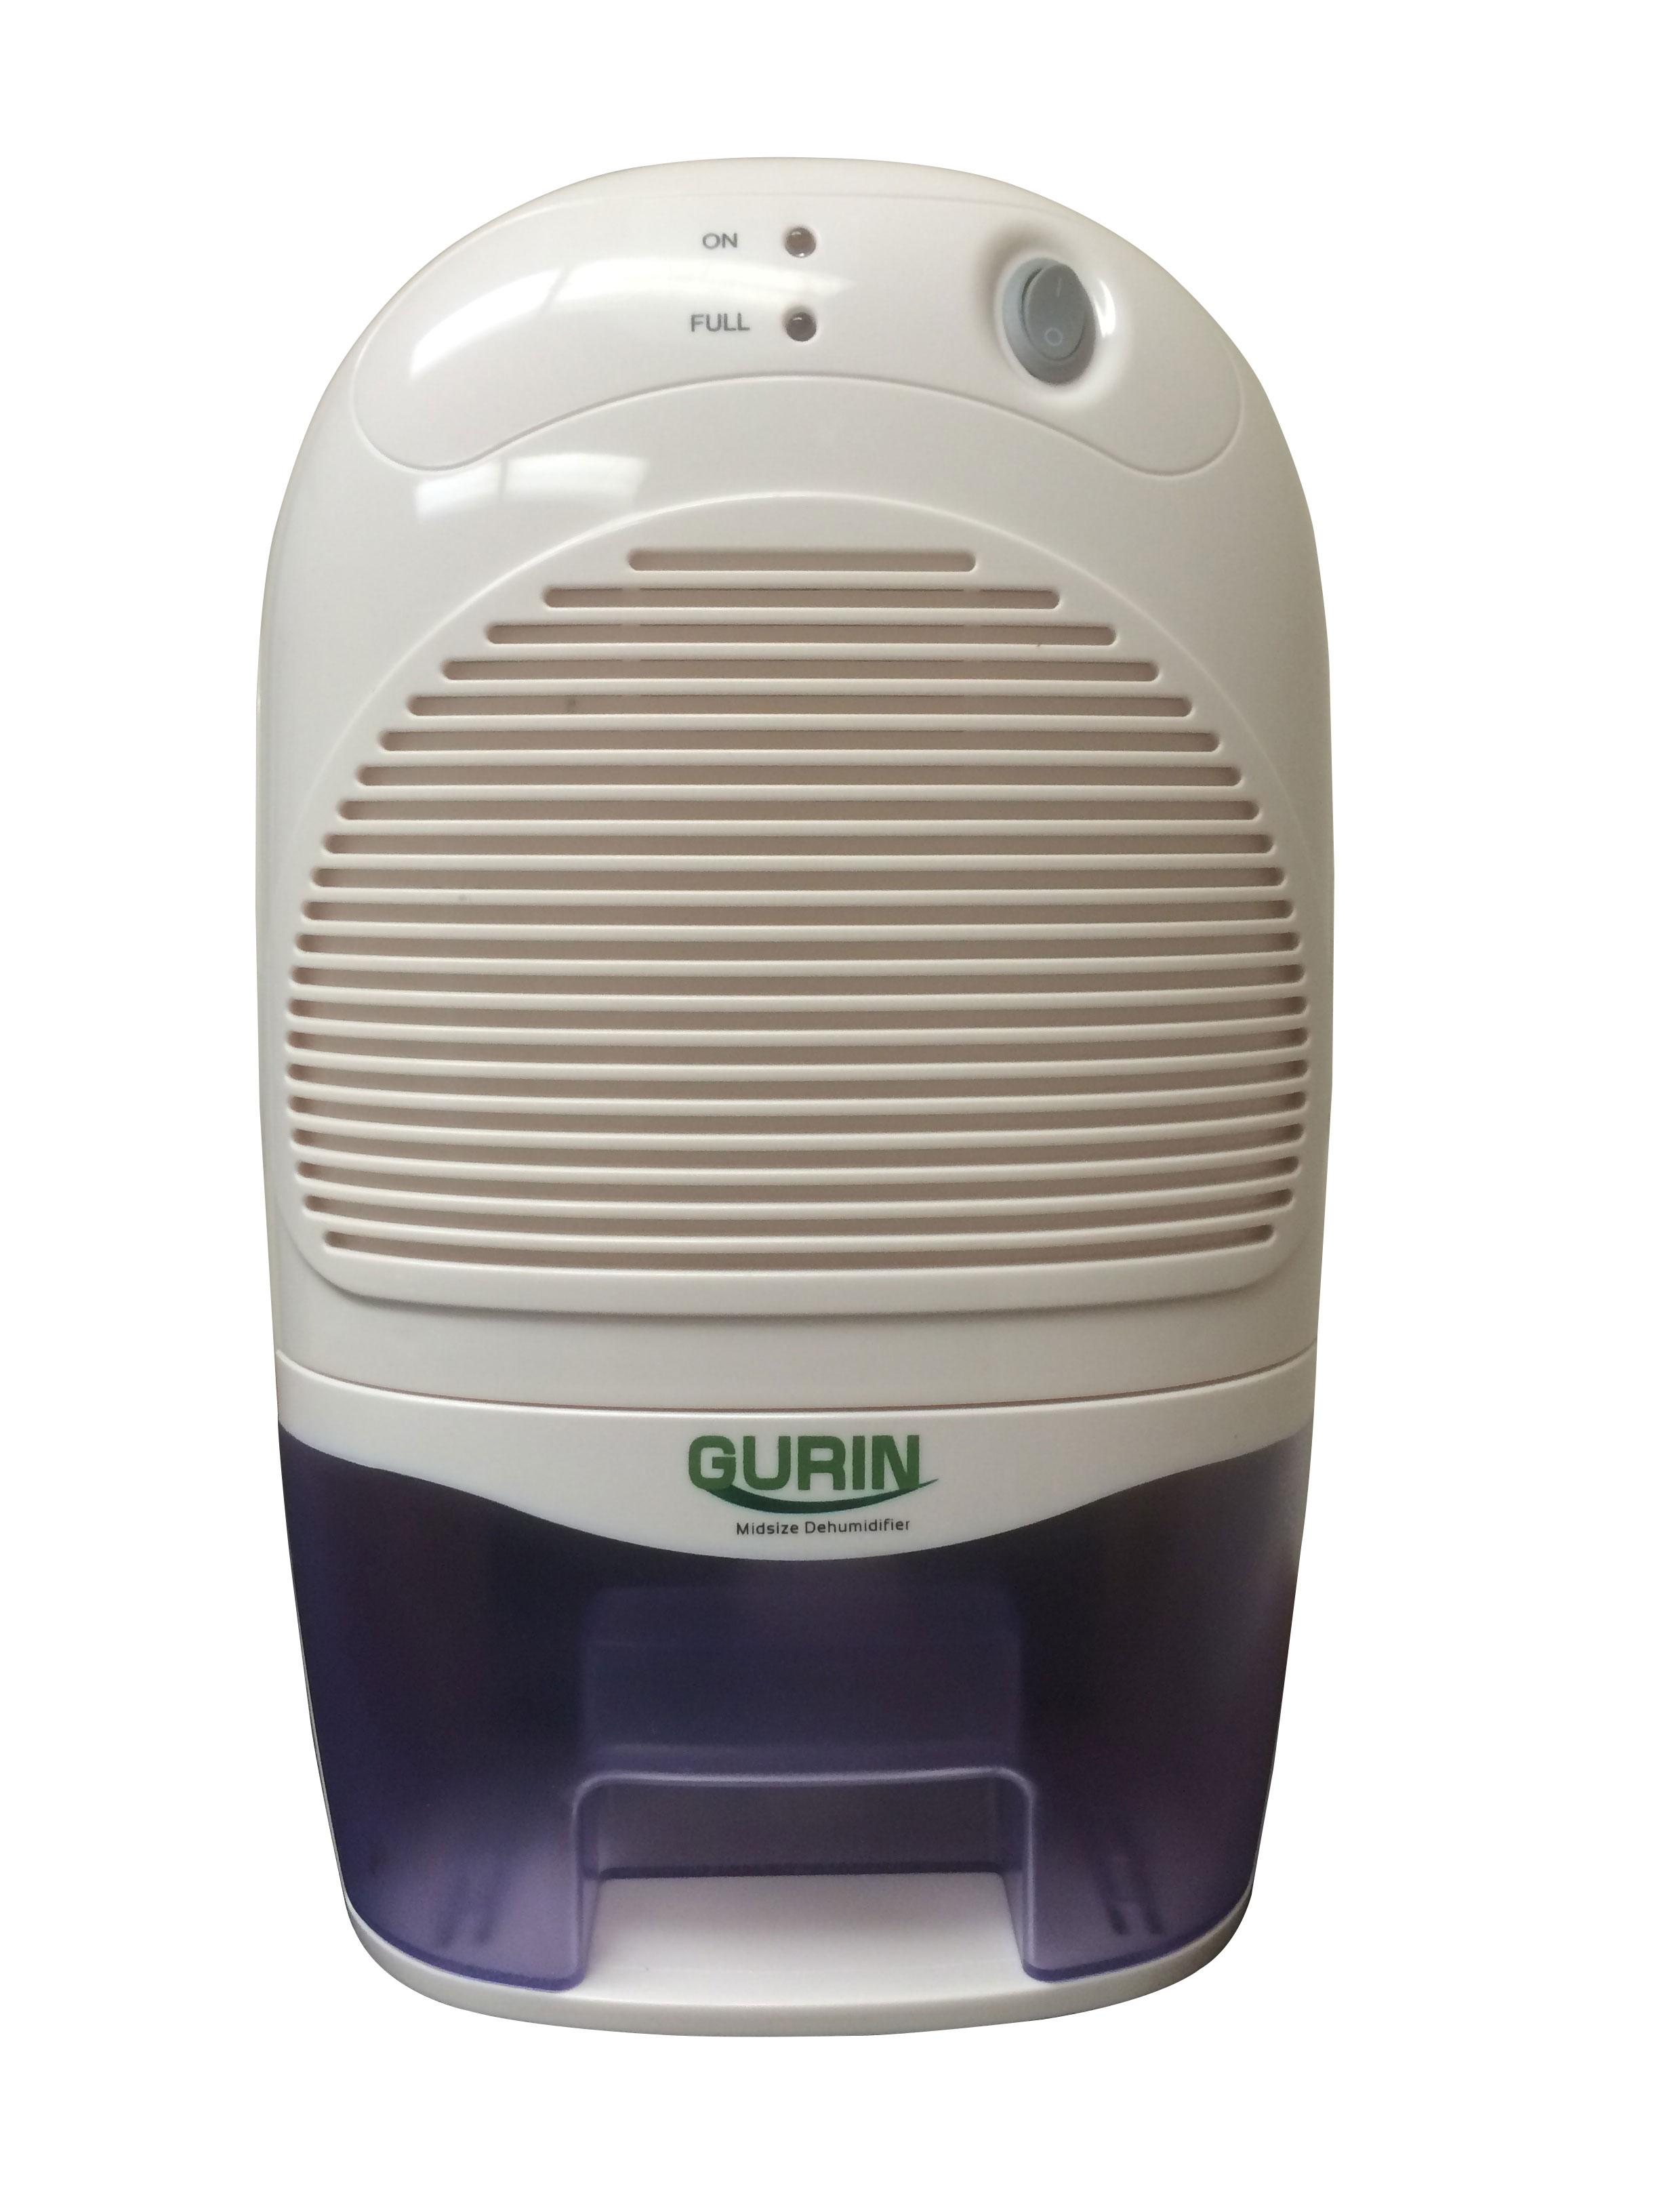 Amazon.com: Gurin DHMD 310 Mid Size Electric Dehumidifier with 1500ml  #5C4E43